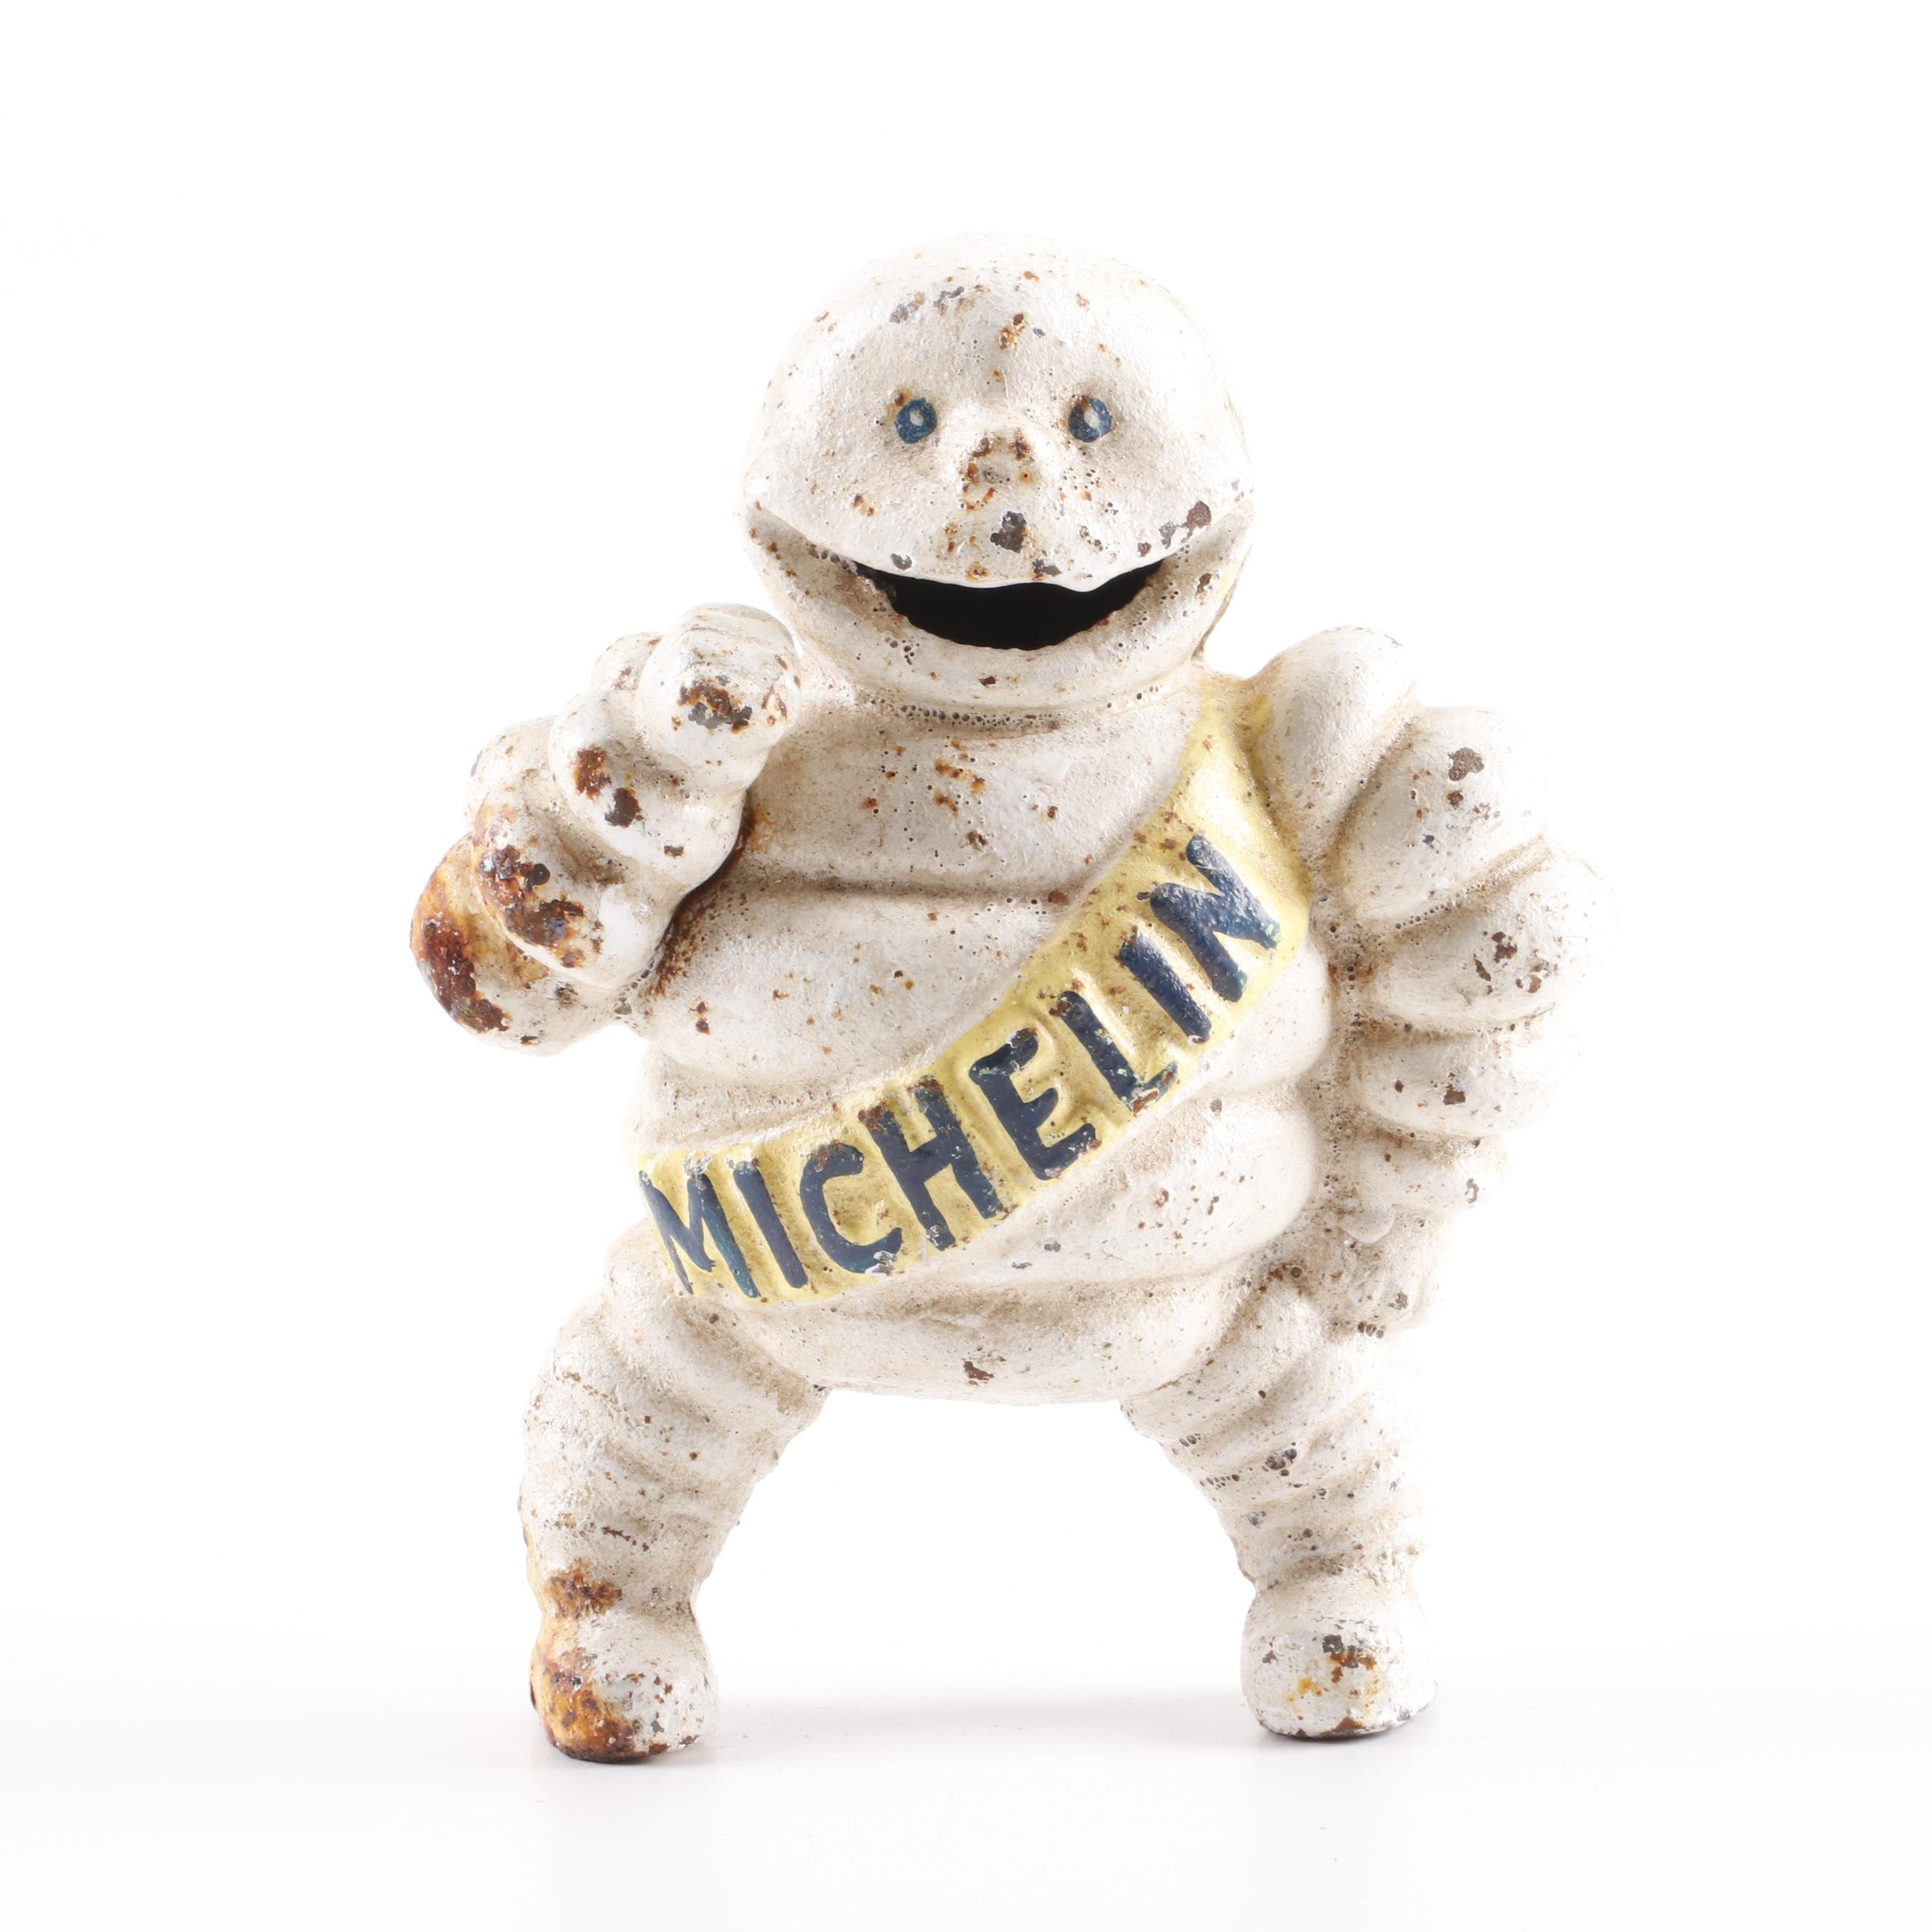 Reproduction Cast Iron Michelin Man Coin Bank